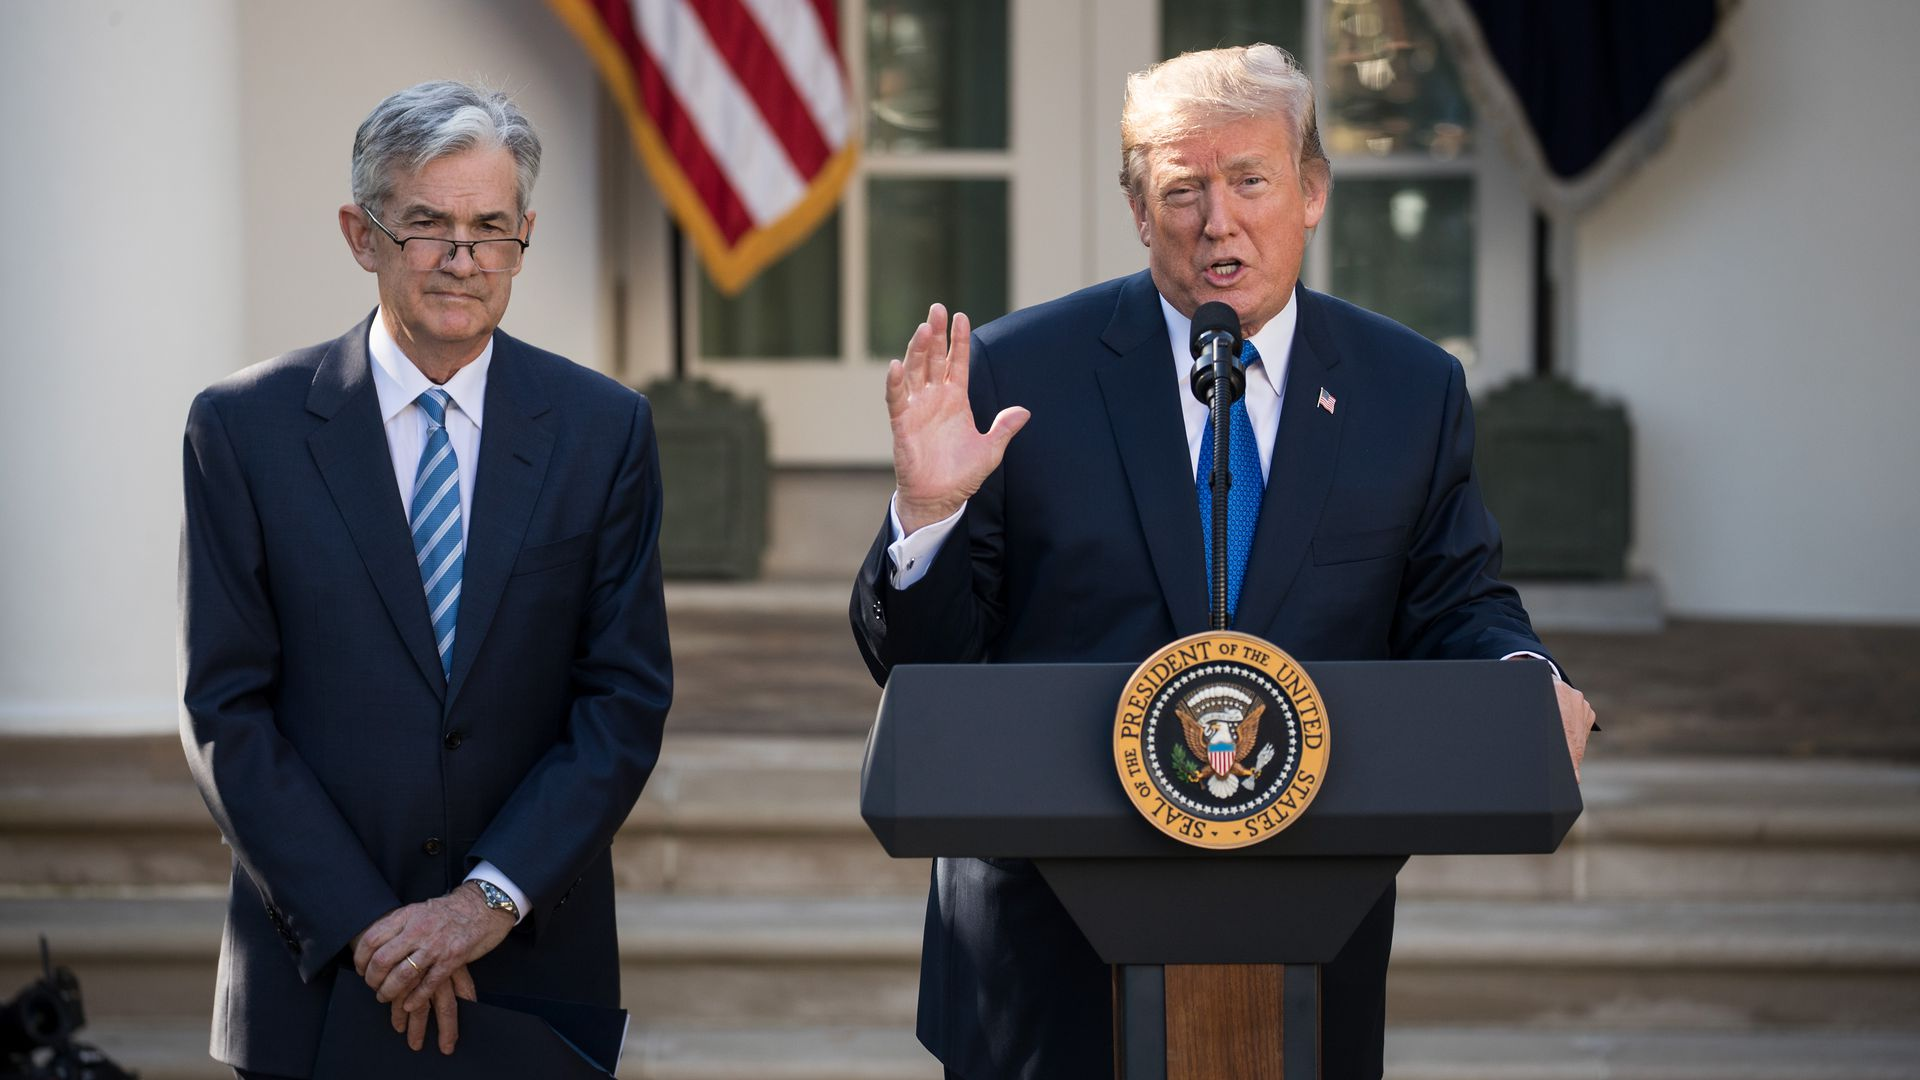 President Trump stands with Federal Reserve chairman Jerome Powell in front of the White House